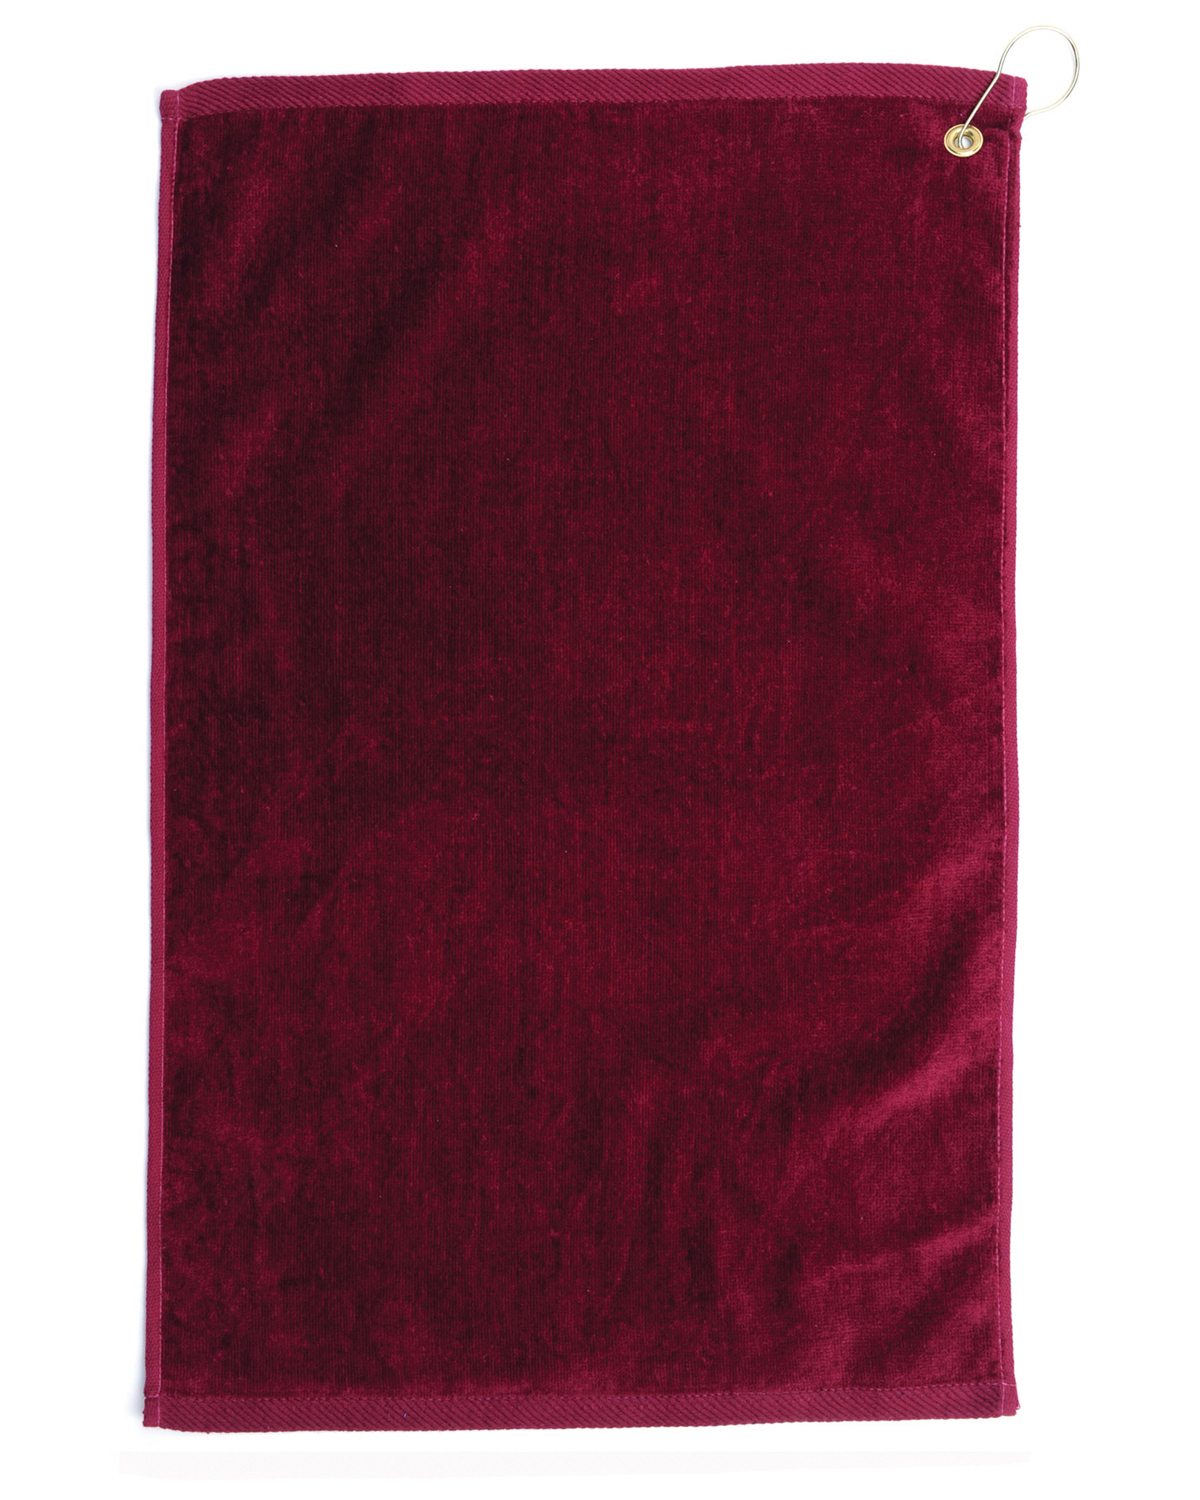 TRU25CG Diamond Collection Golf Towel